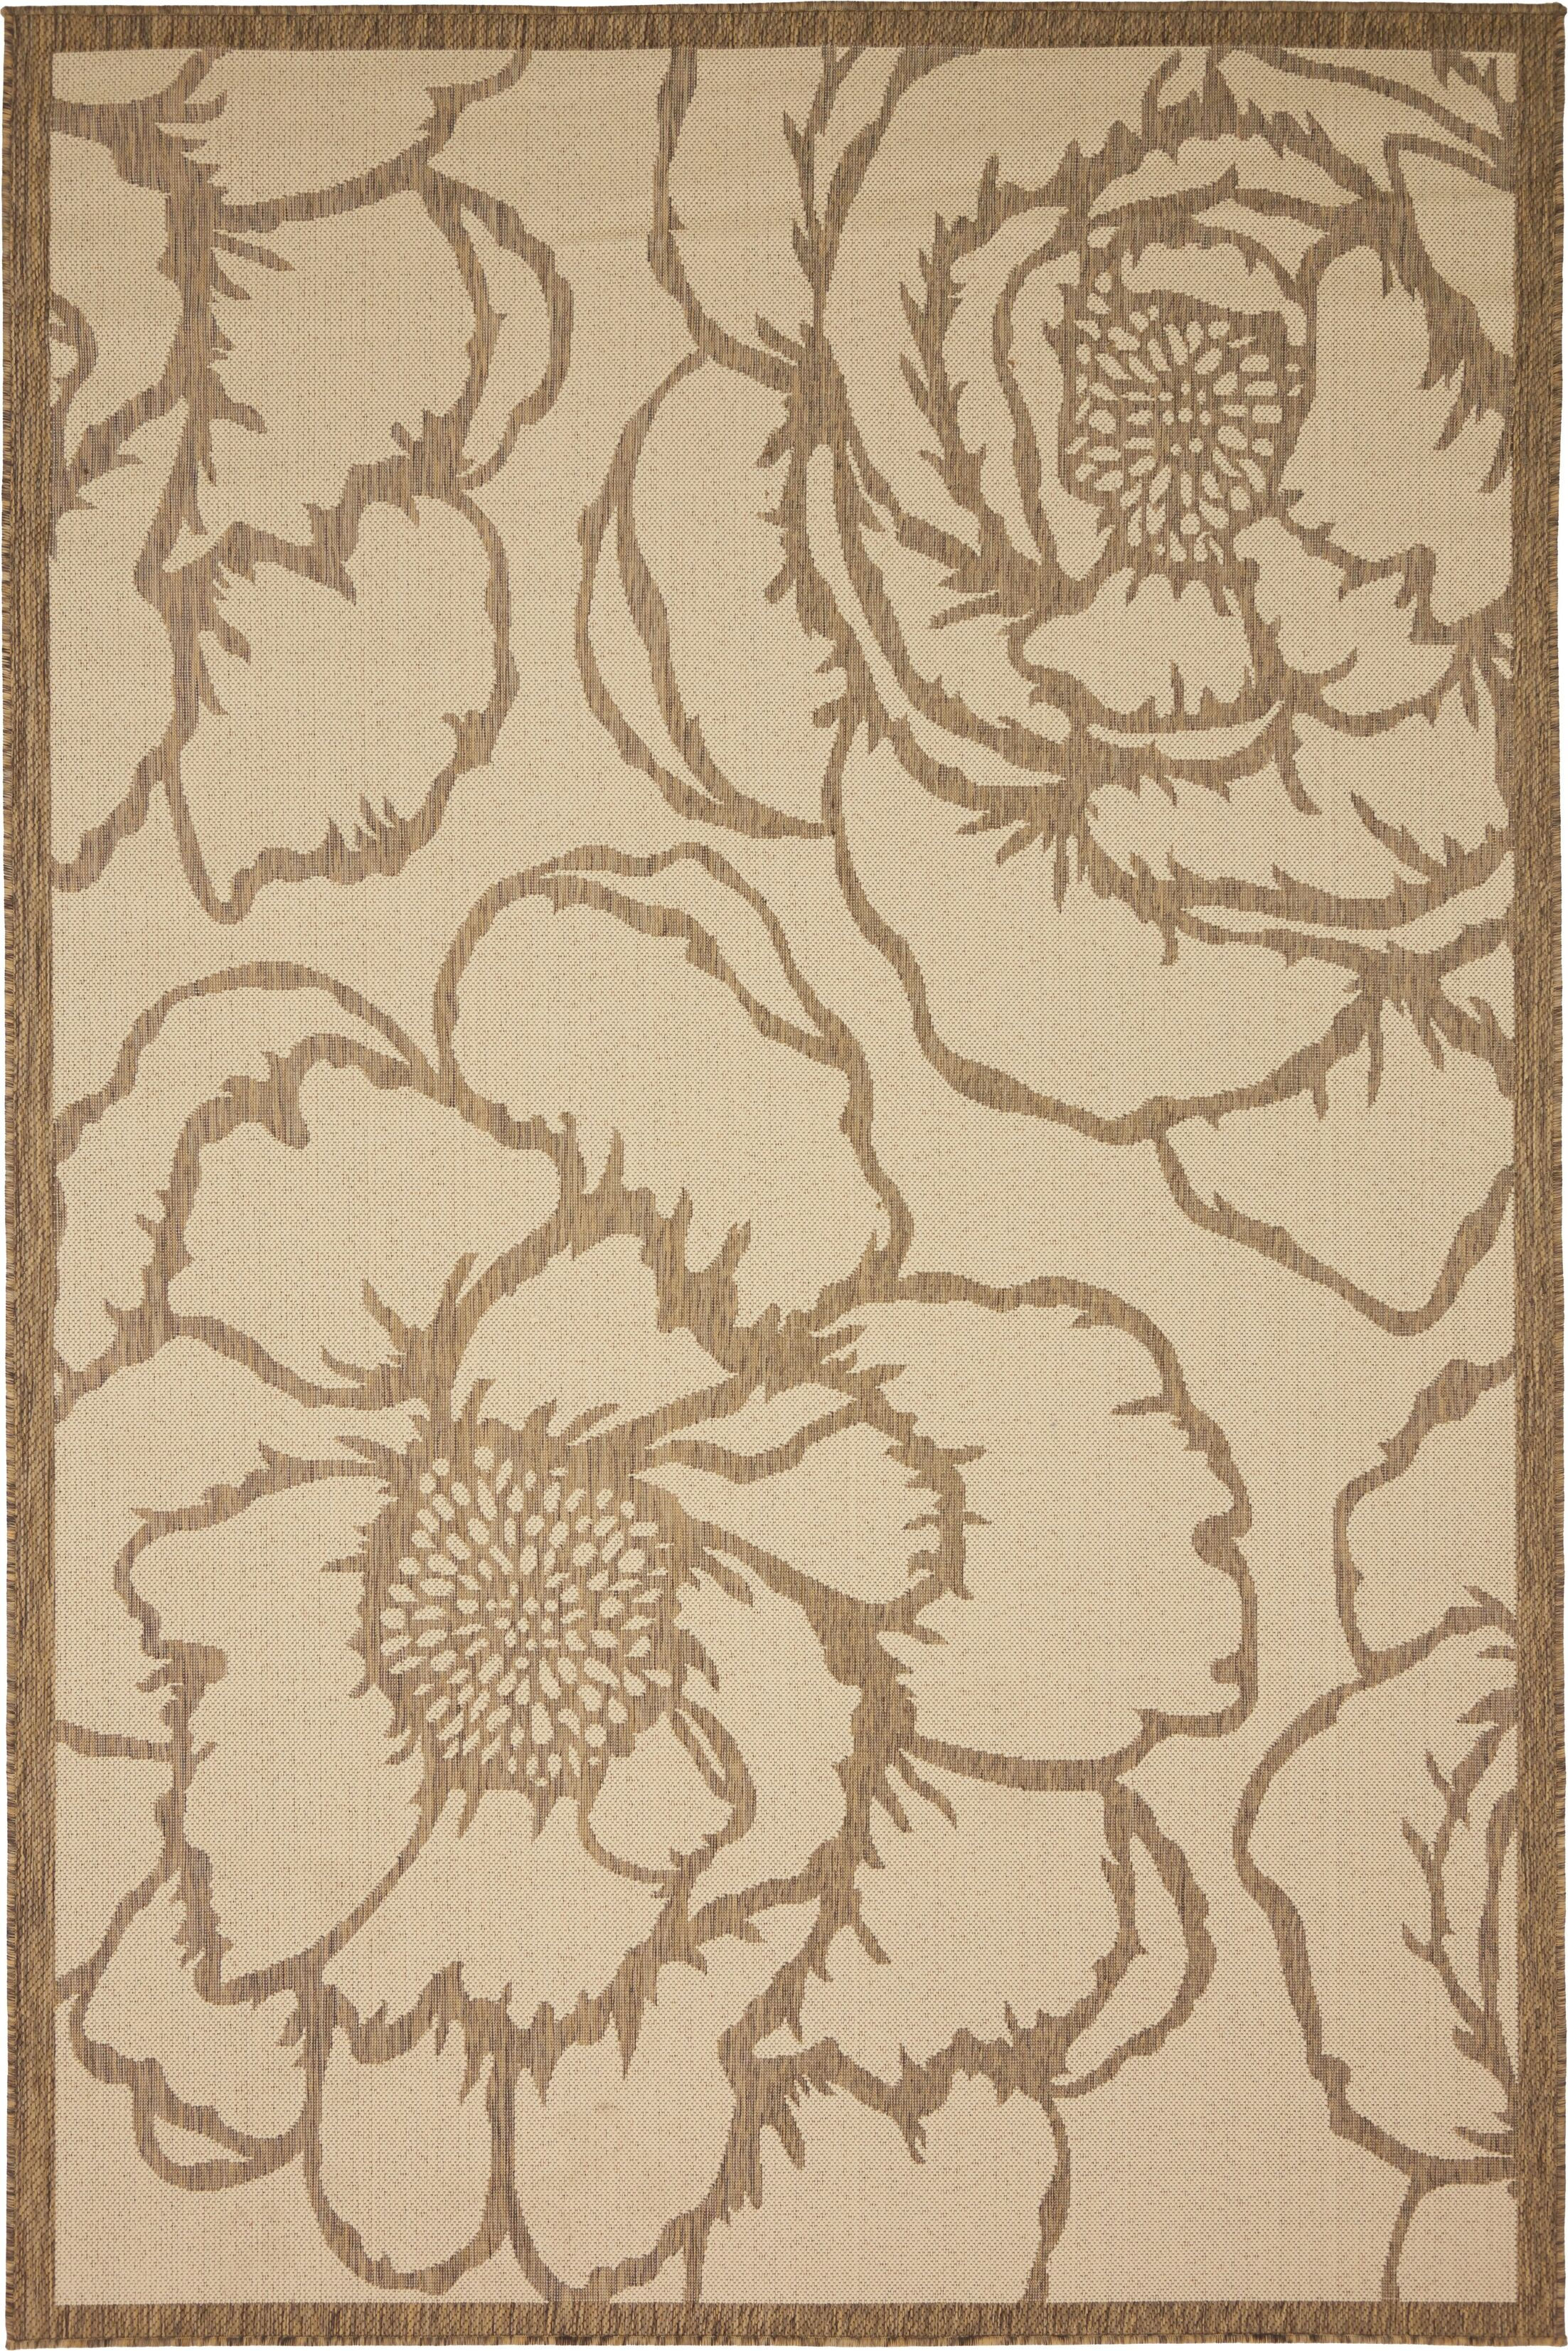 Souliere Beige Outdoor Area Rug Rug Size: Rectangle 6' x 9'